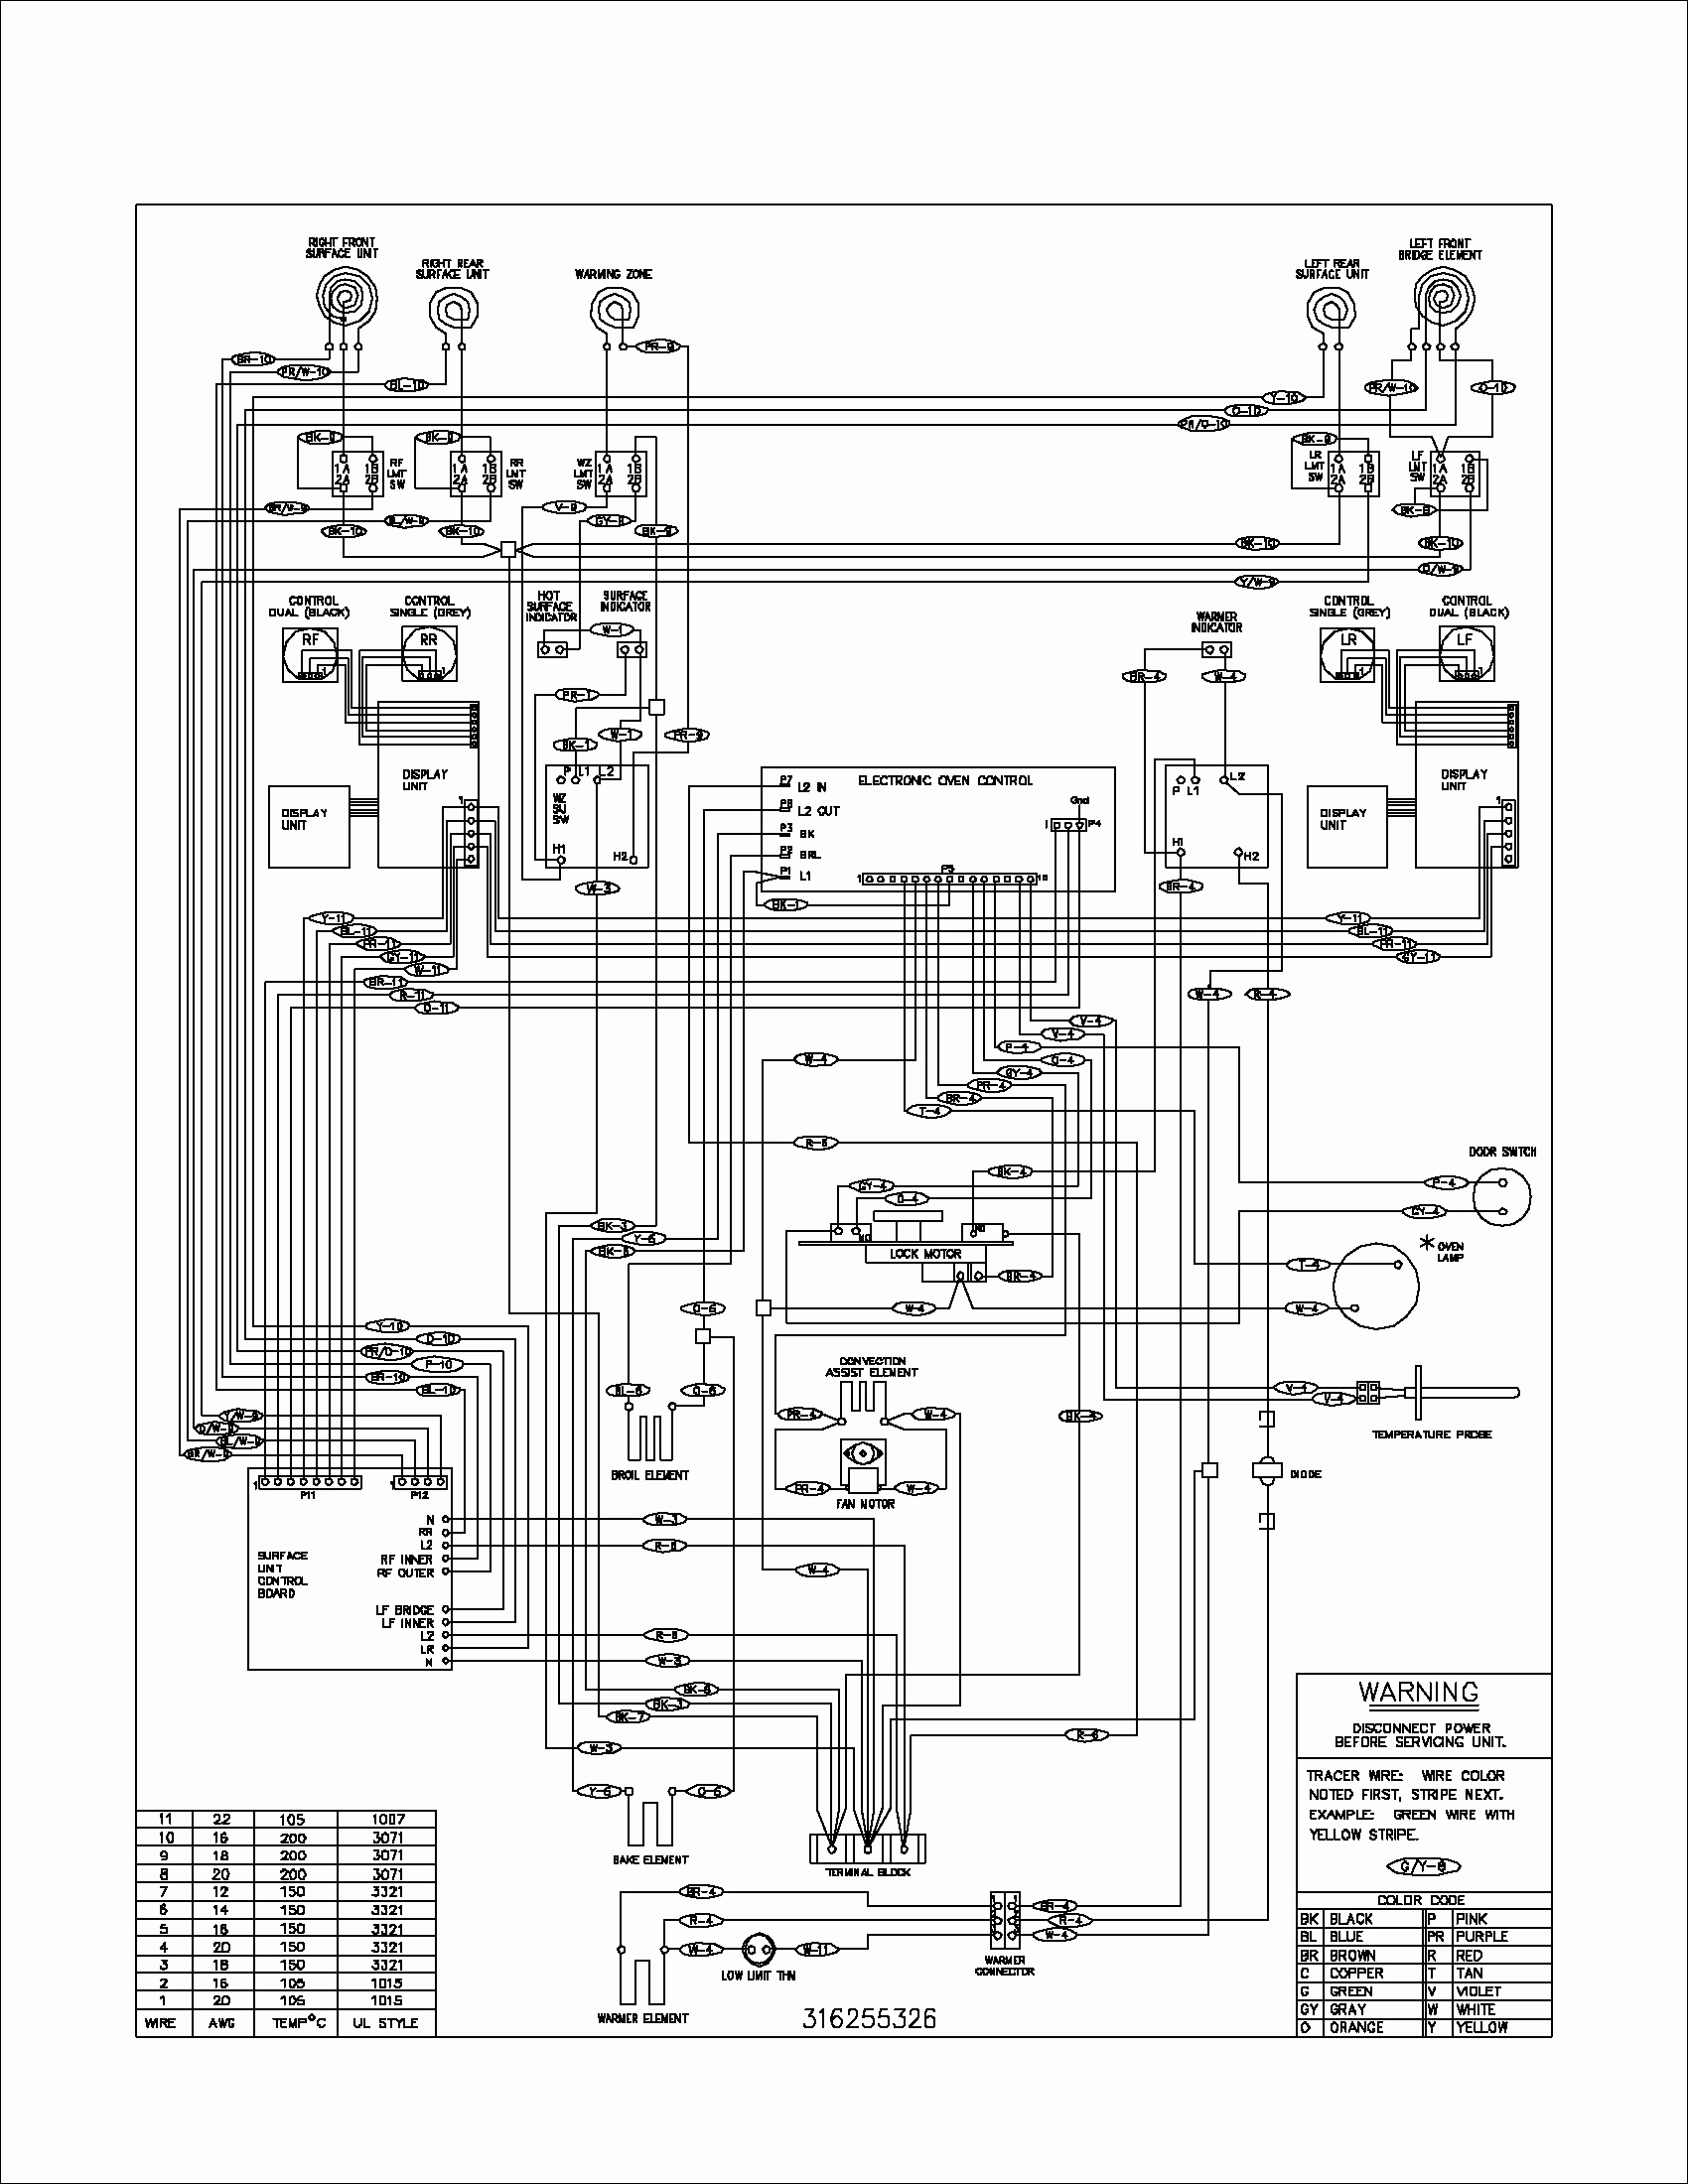 e2eb electric furnace wiring diagram intertherm 015h